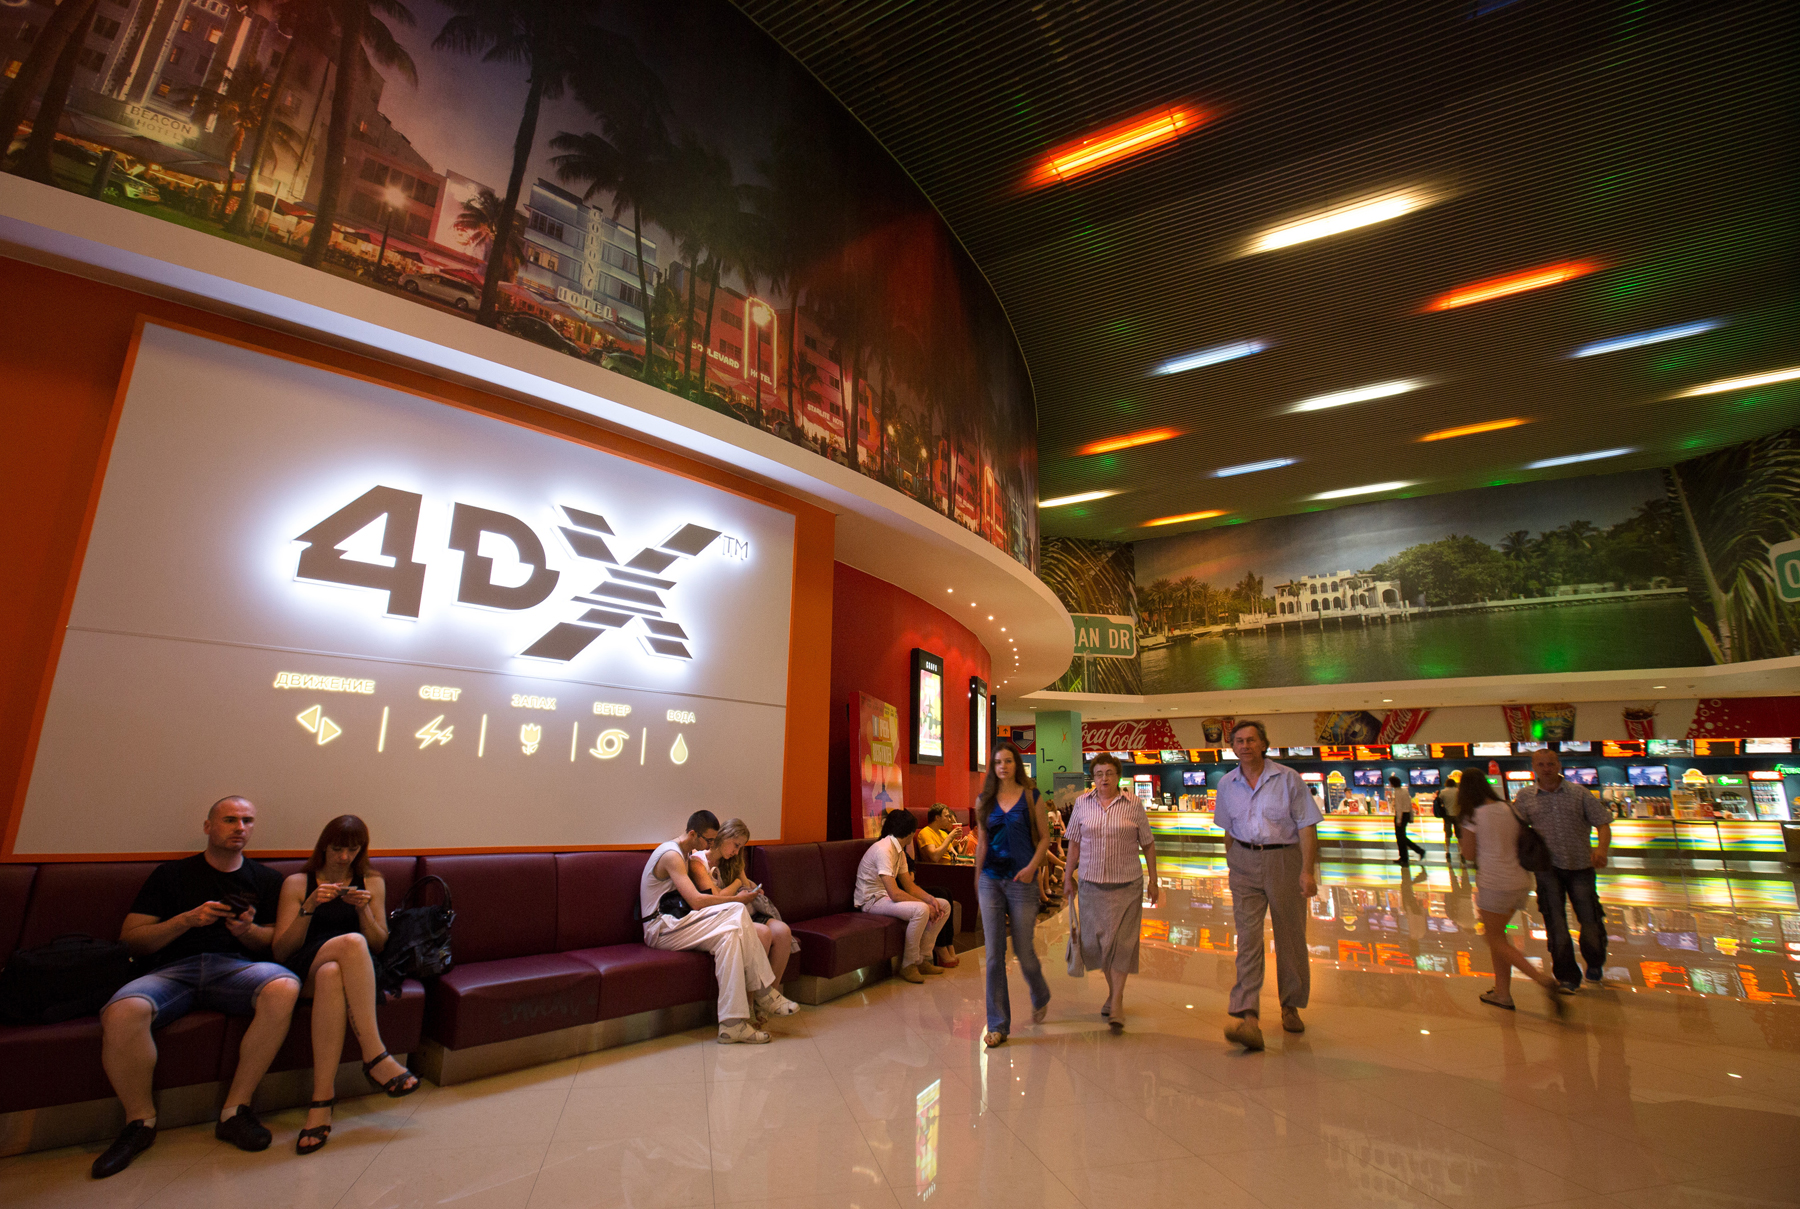 8 Things You Need to Know About the 4DX Theater Experience